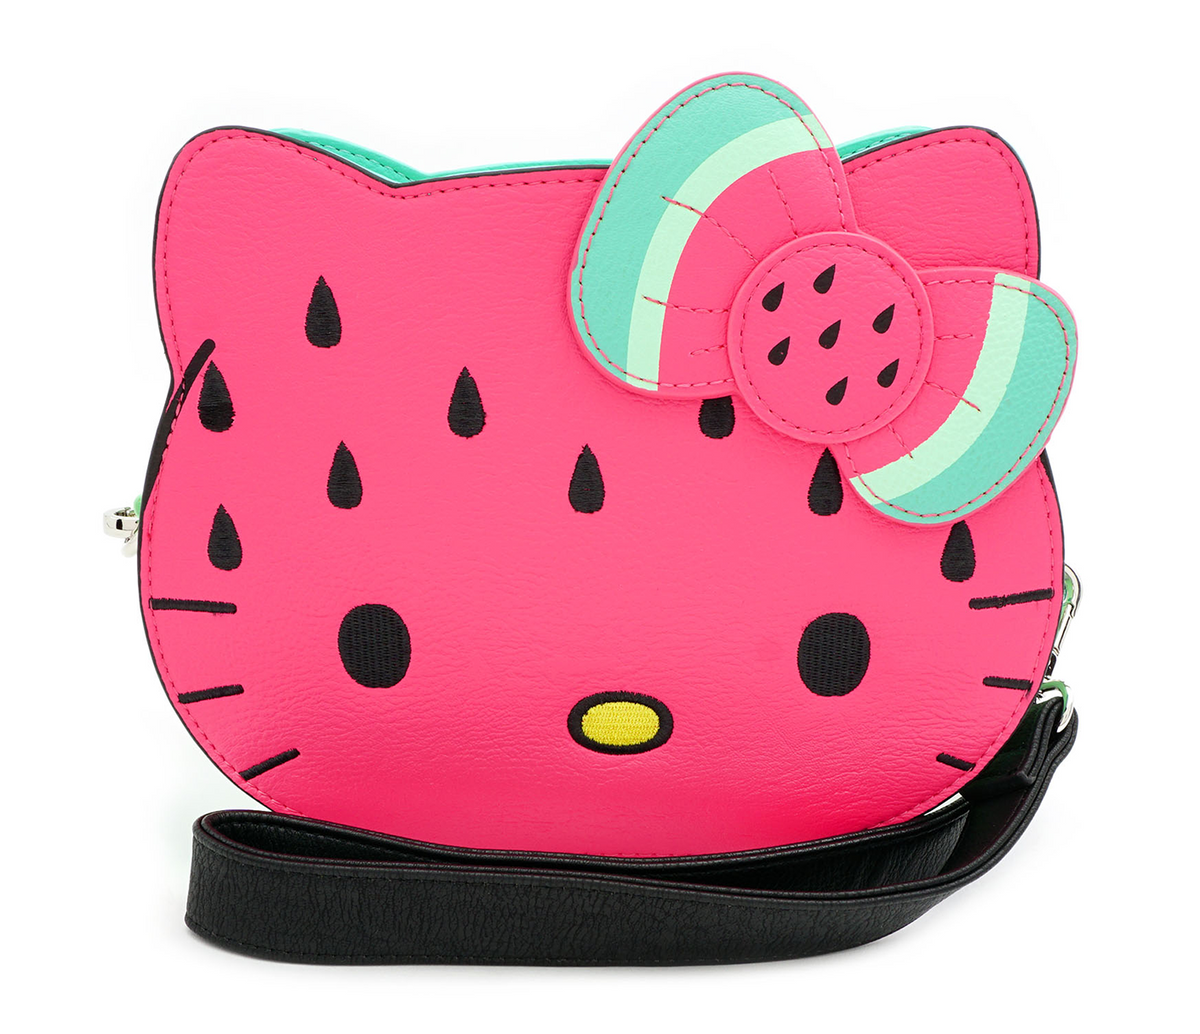 Loungefly x Hello Kitty Watermelon Crossbody Bag